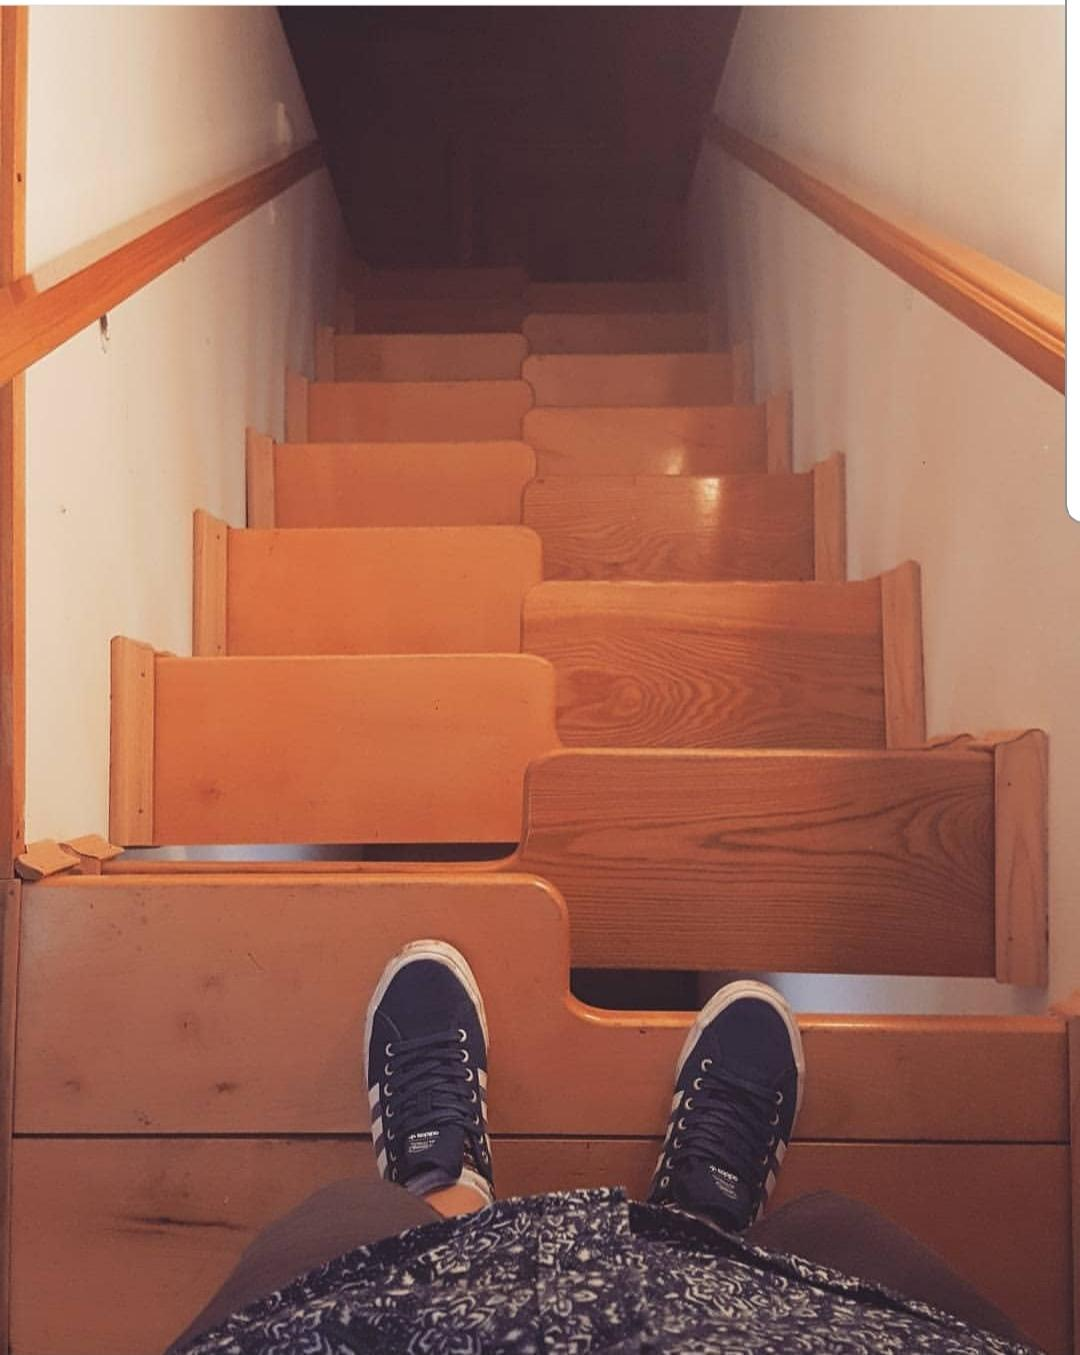 some stairs that go somewhere